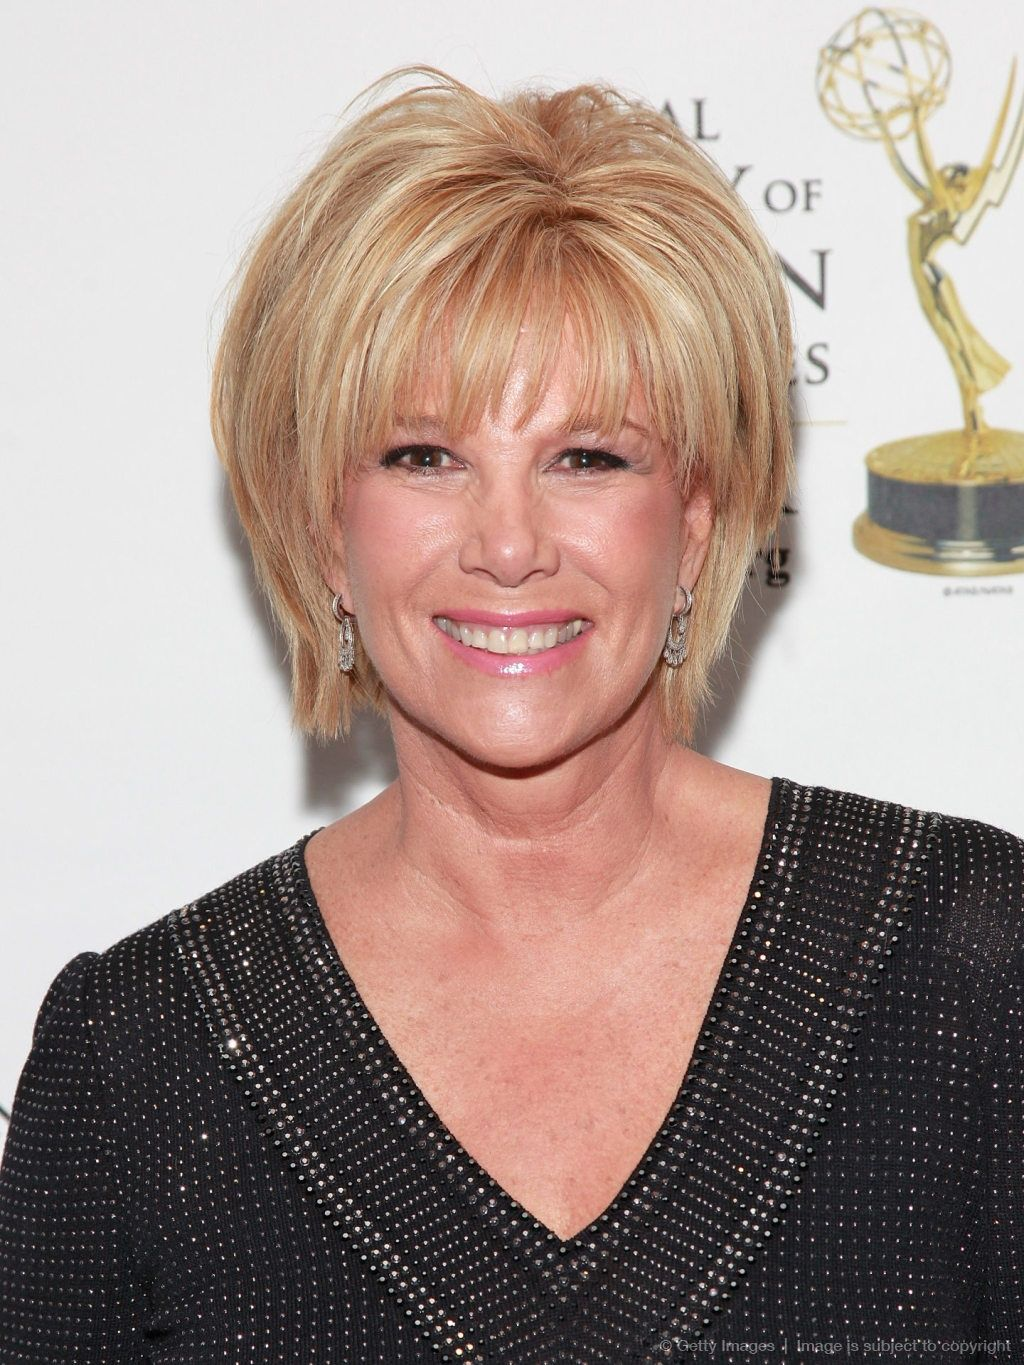 joan lunden hair styles - Yahoo Search Results | Hairstyles in 2018 ...